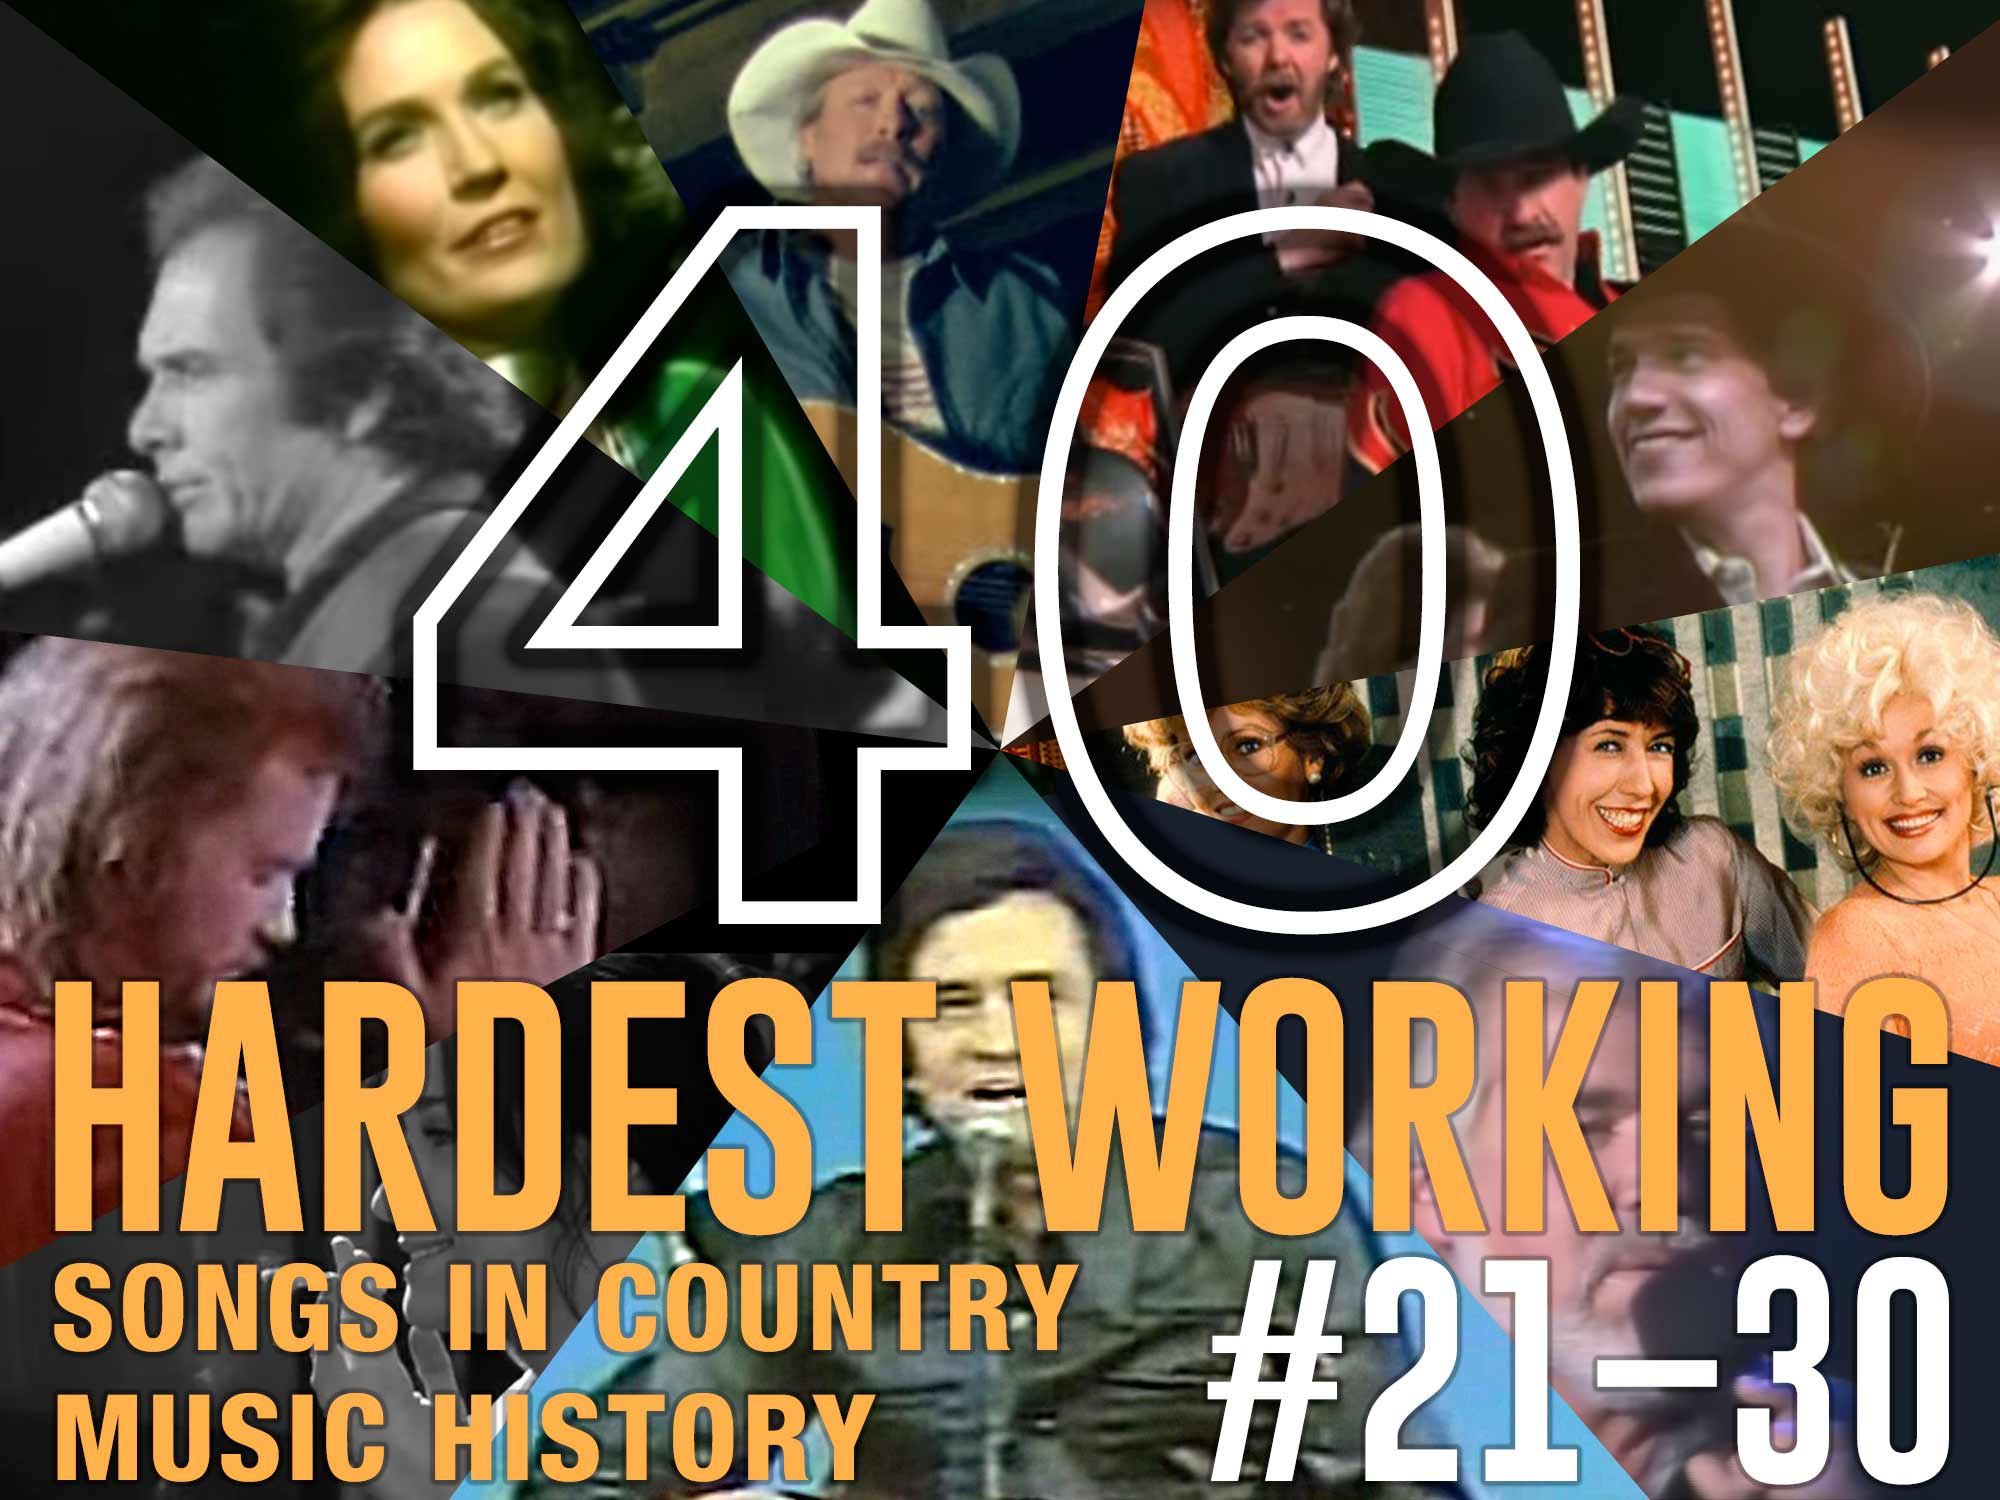 In Honor of Labor Day, the 40 Hardest Working Songs in Country Music History: #21–30